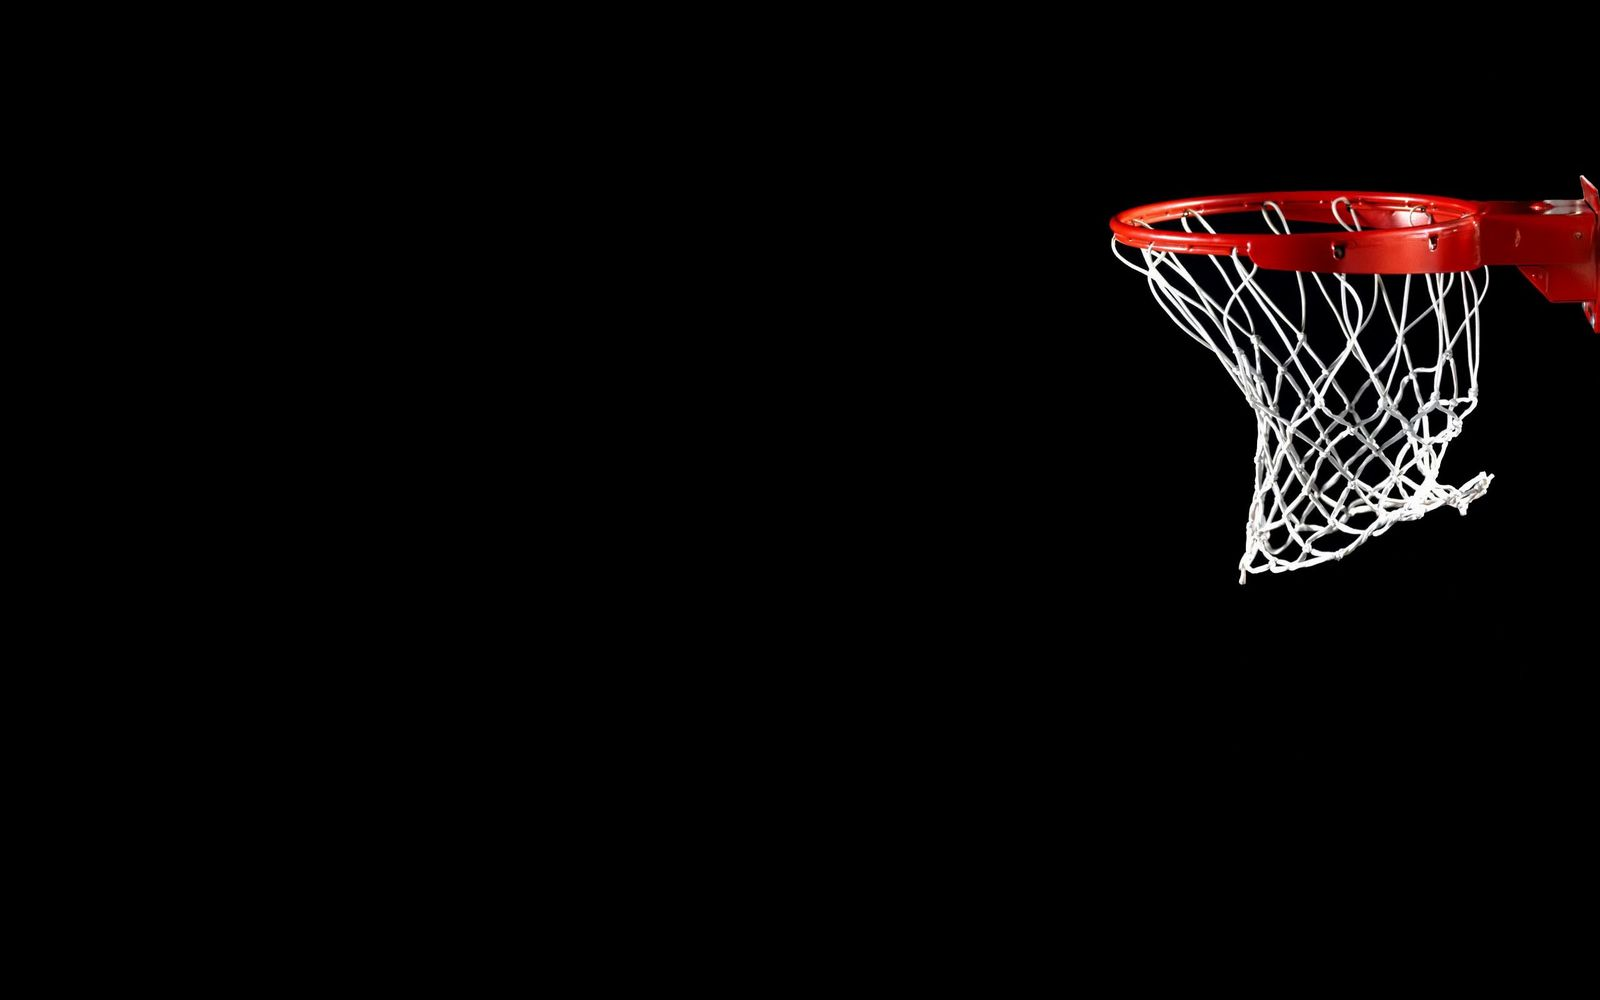 Basketball black background Wallpaper